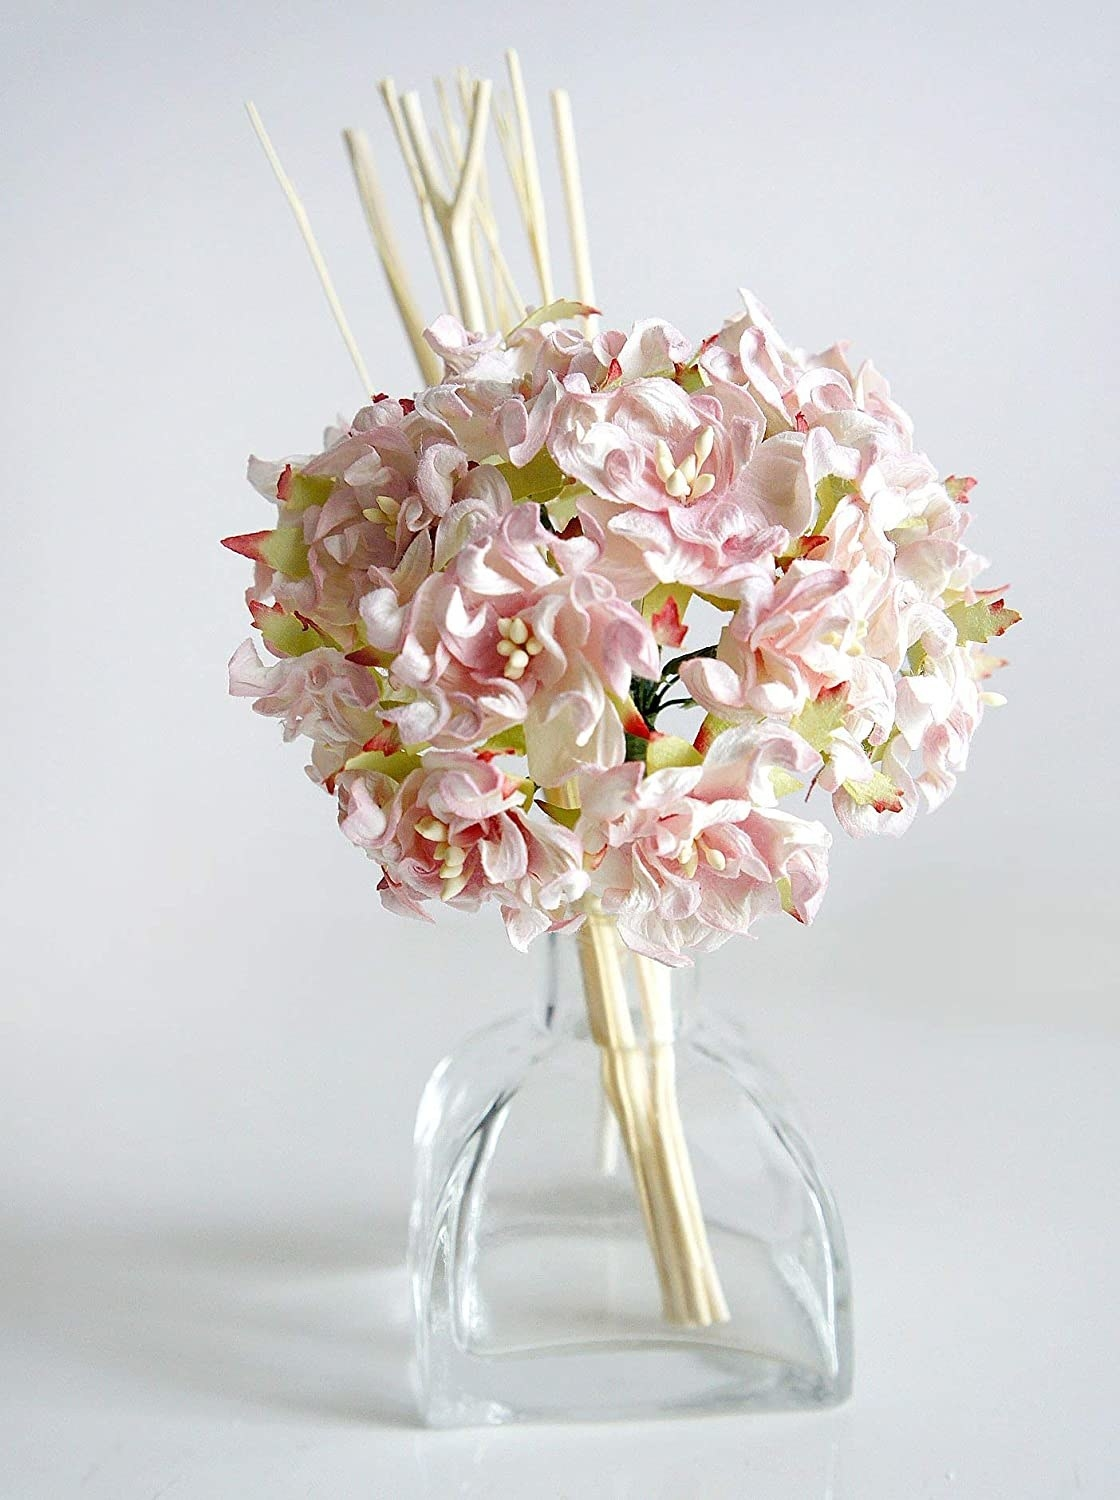 the flower and reed diffuser in vase